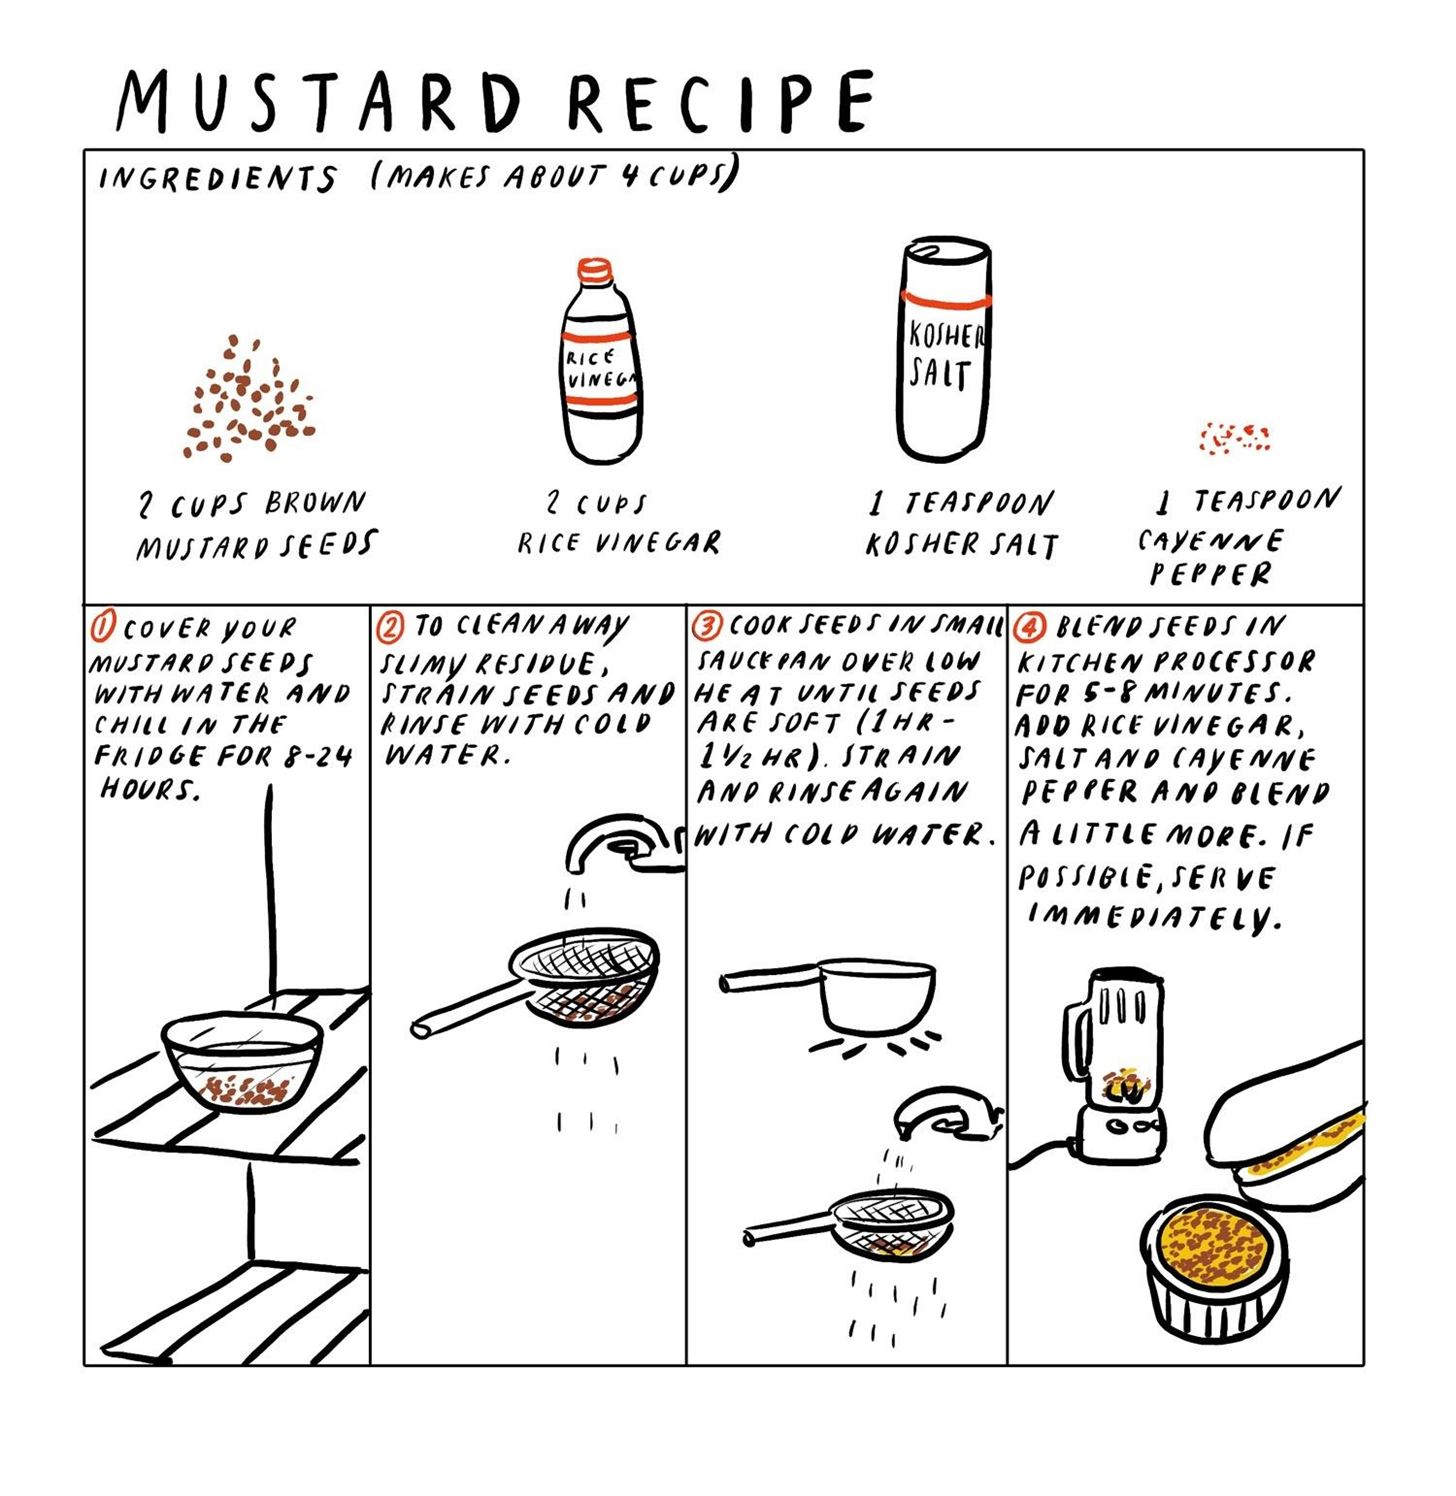 How to Make Homemade Ketchup, Mustard, & Other Common BBQ Condiments